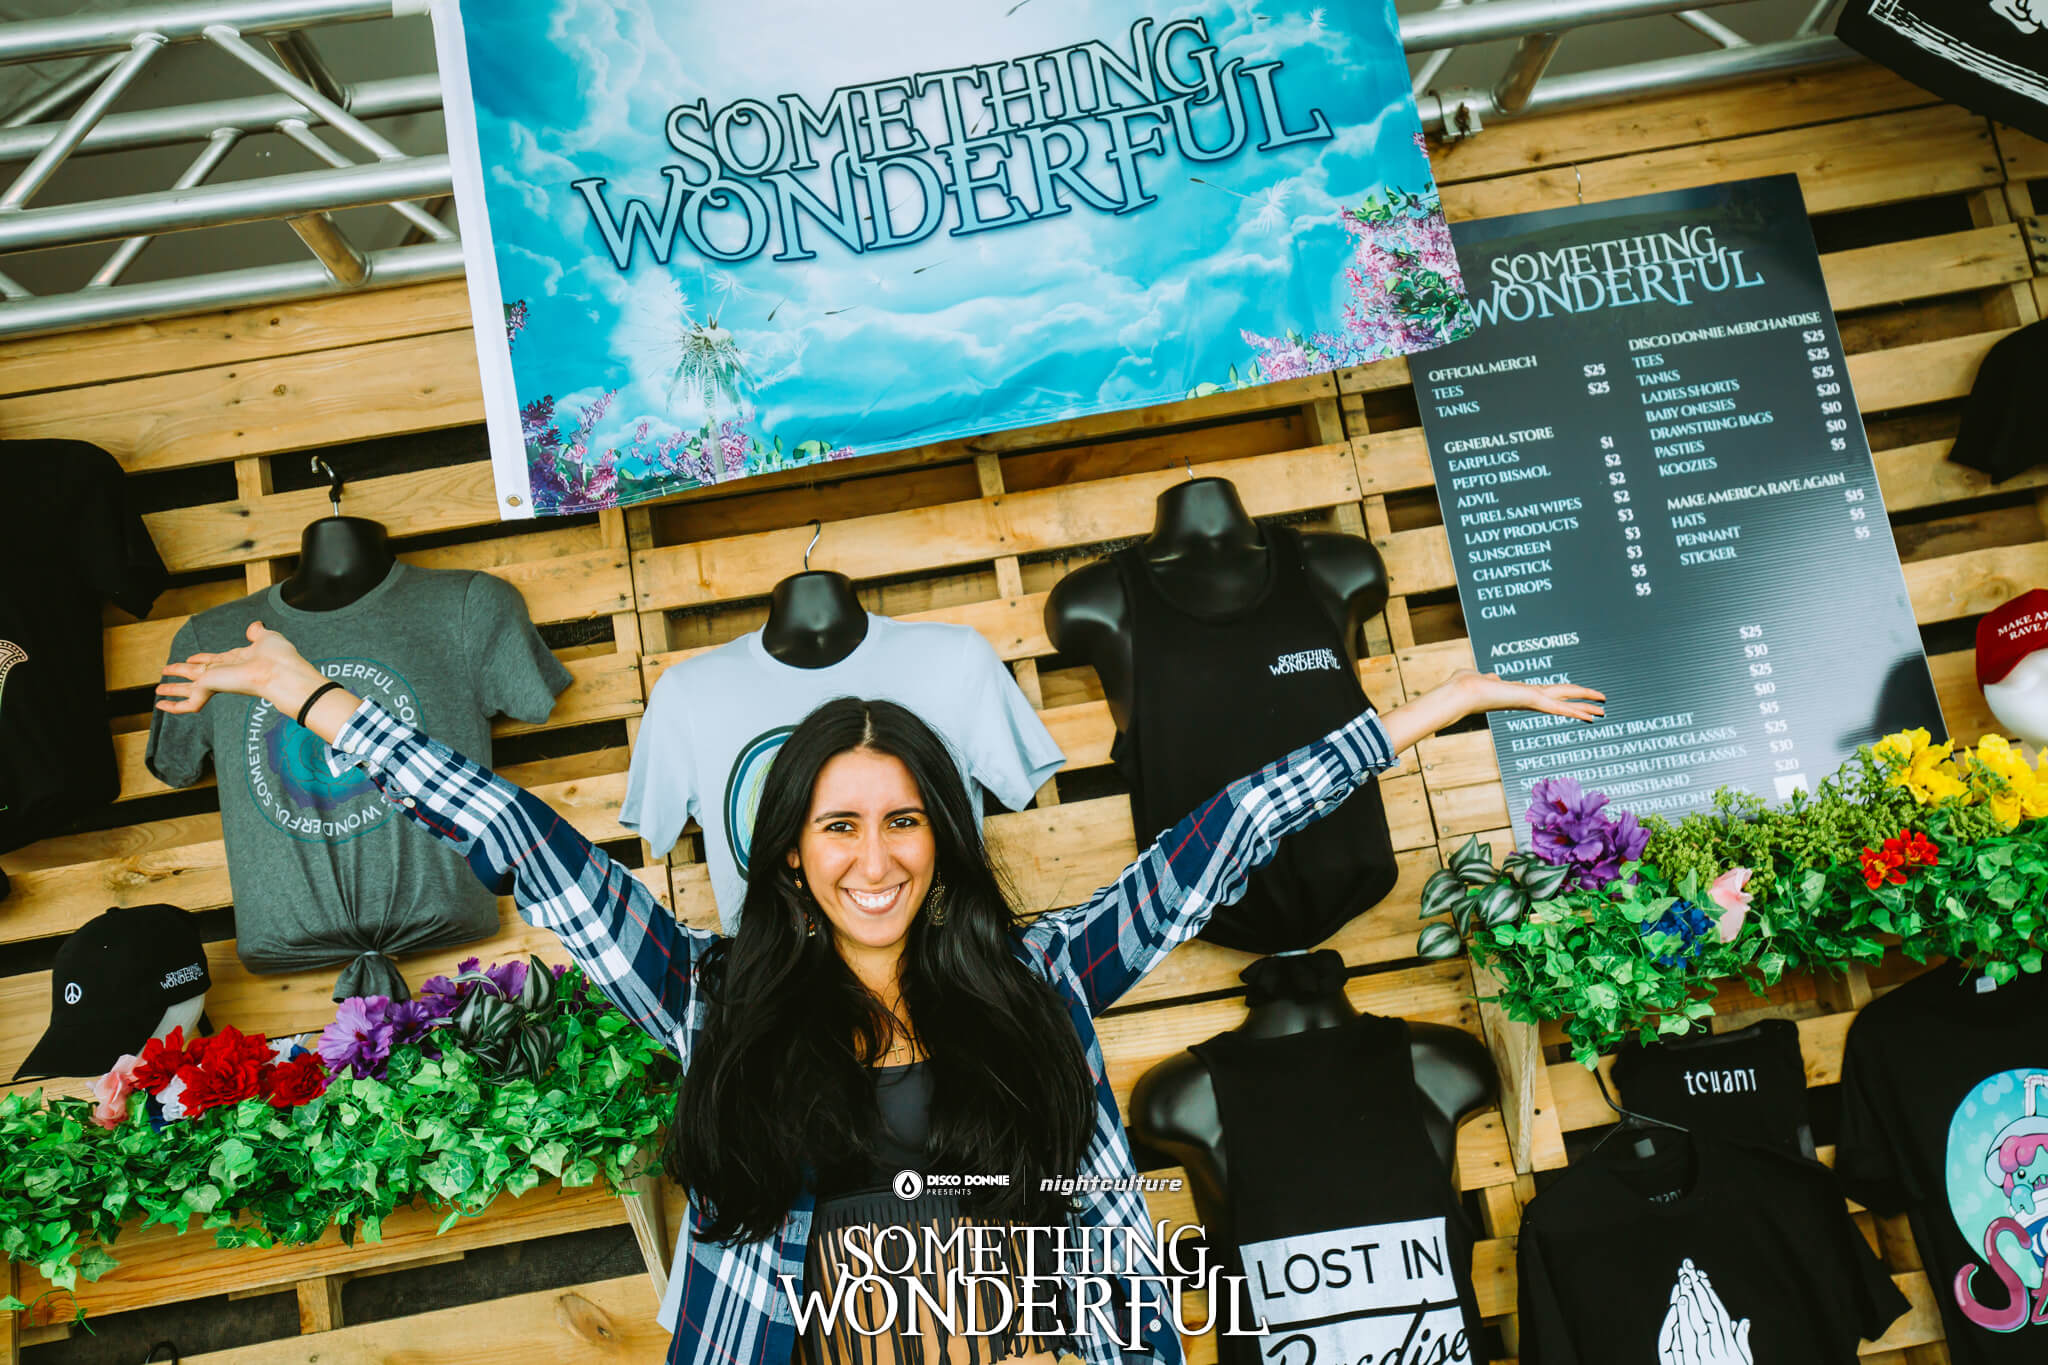 official festival merch booth